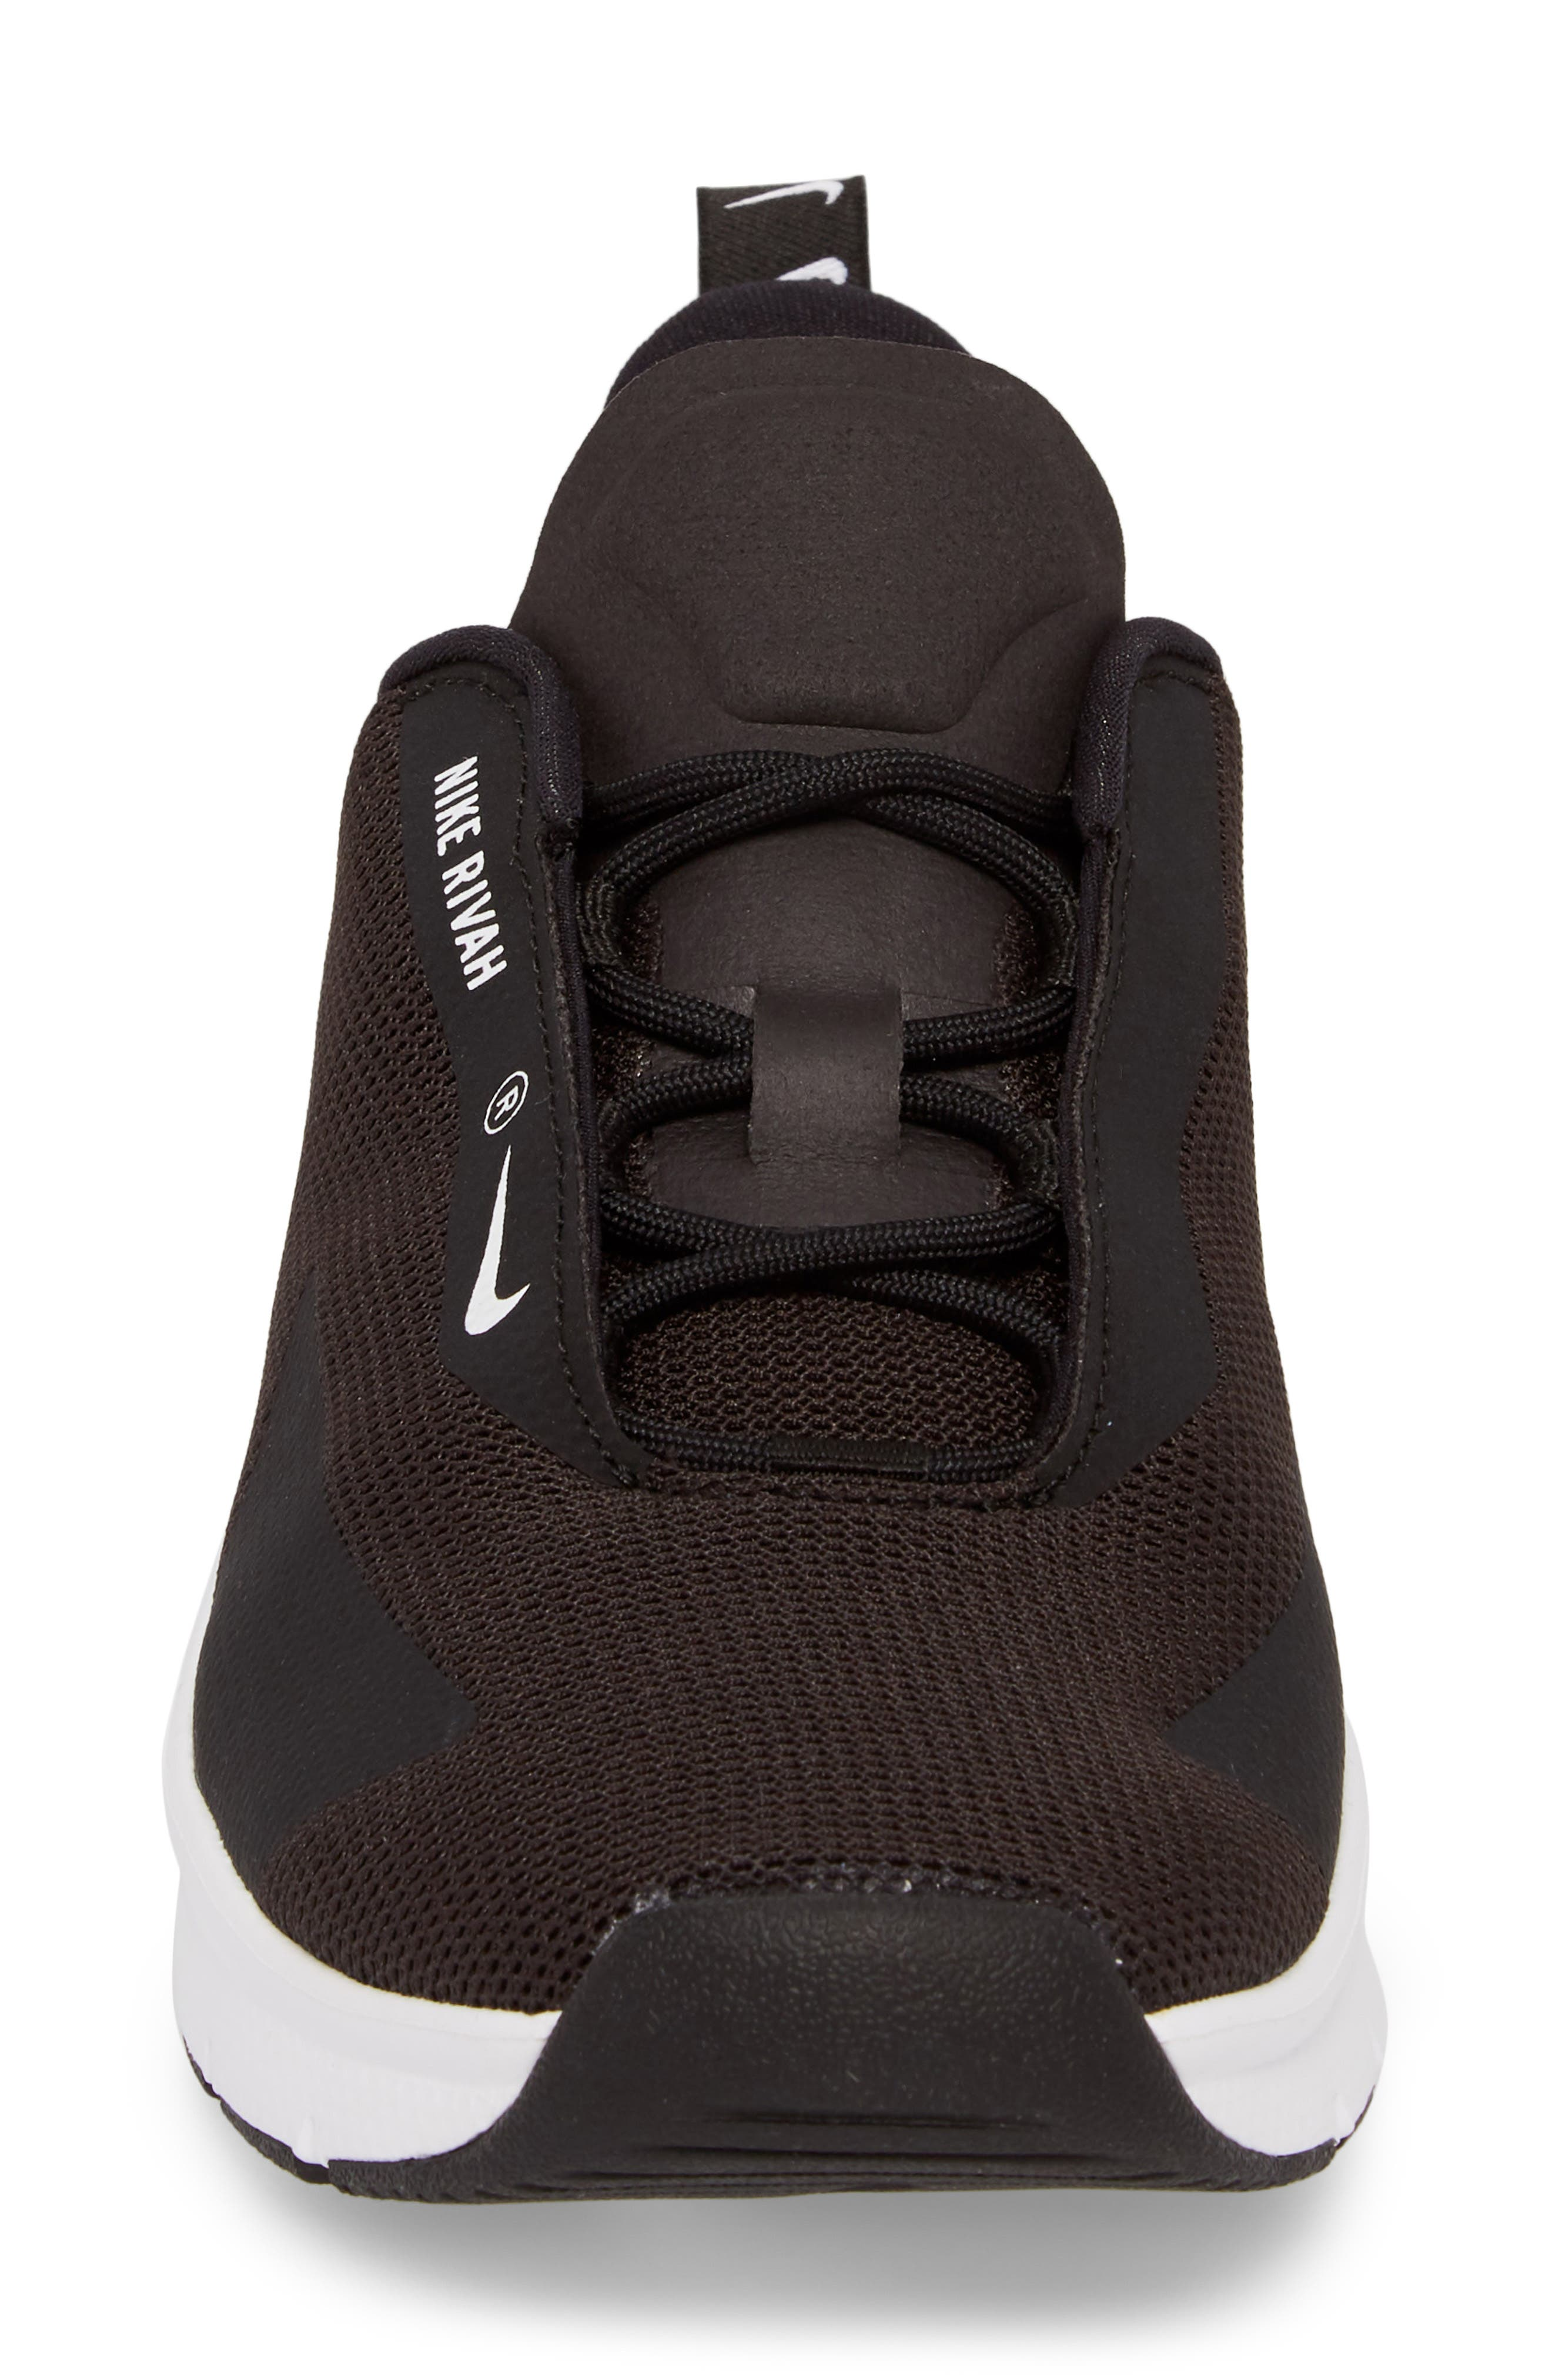 Rivah Sneaker,                             Alternate thumbnail 4, color,                             Black/ Black/ White